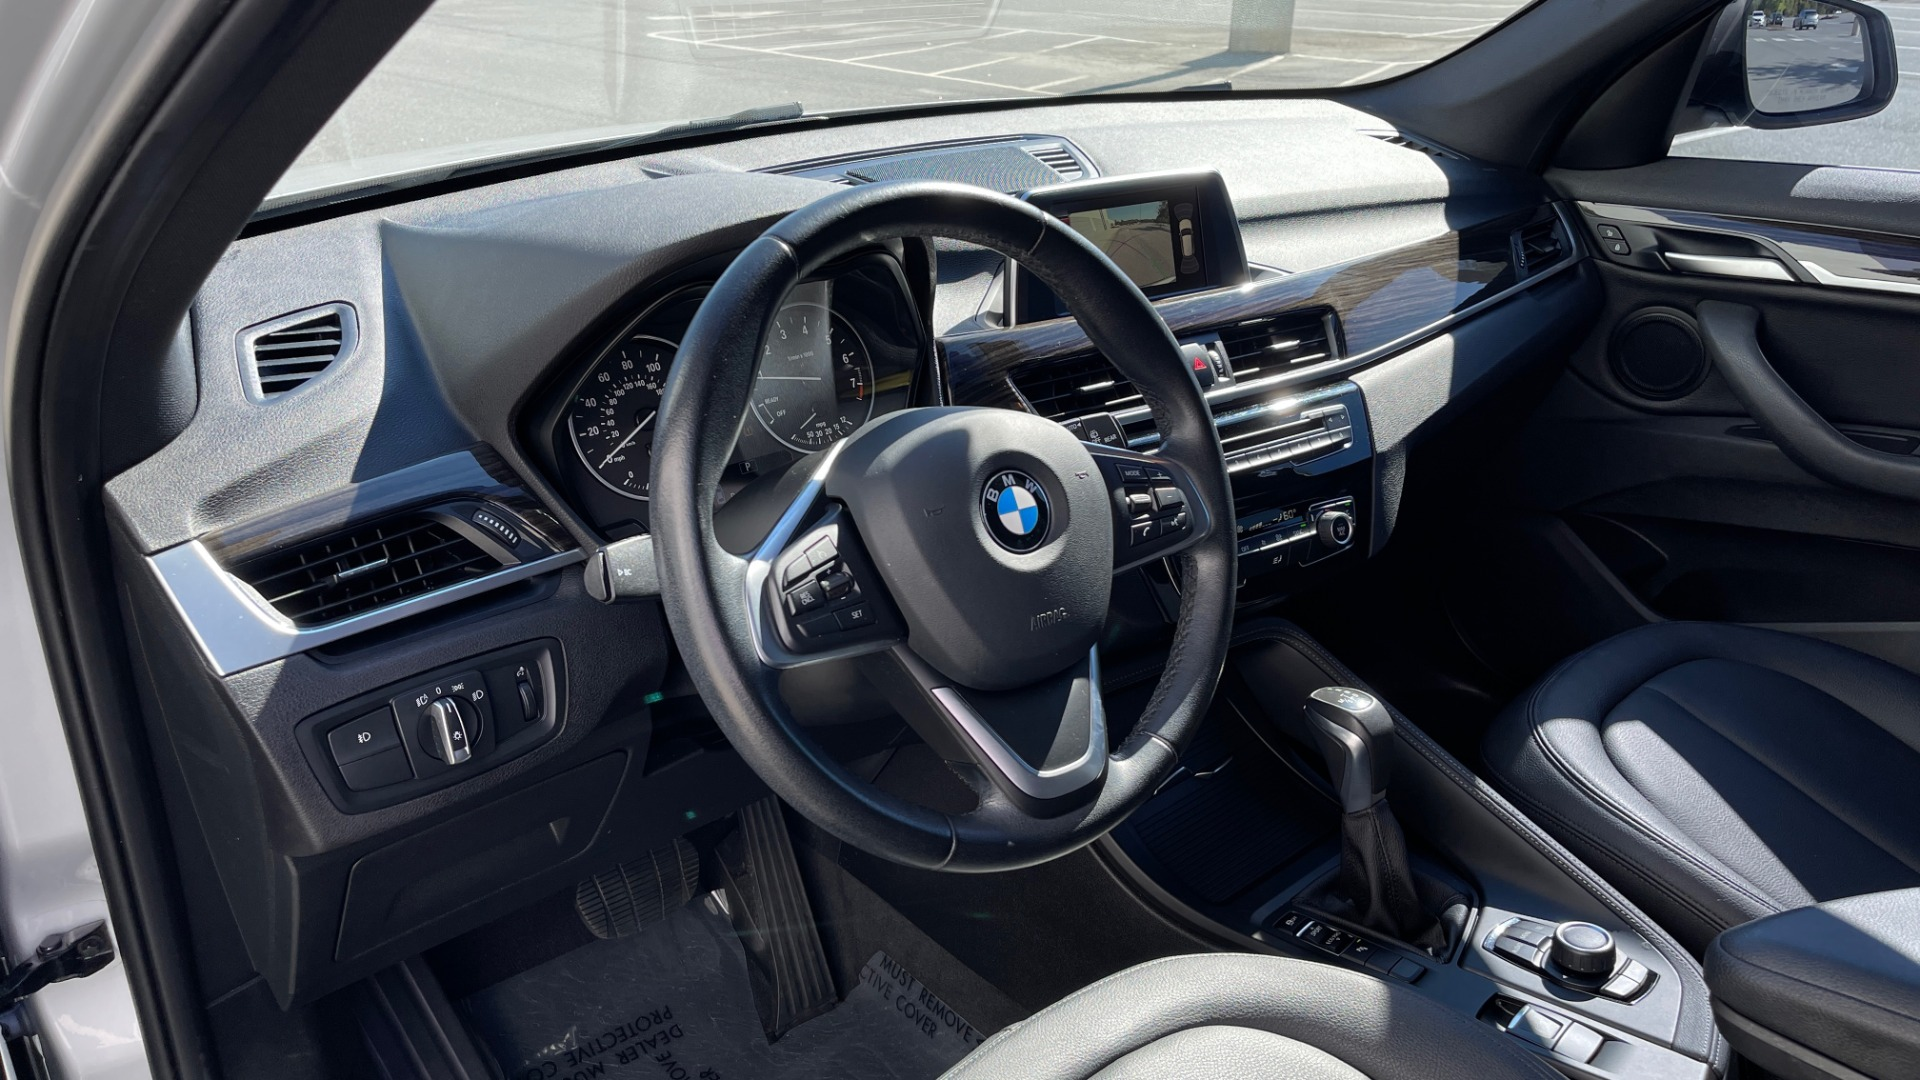 Used 2017 BMW X1 SDRIVE28I 2.0L / 8-SPD AUTO / DRIVER ASST / PANO-ROOF / REARVIEW for sale $26,995 at Formula Imports in Charlotte NC 28227 25